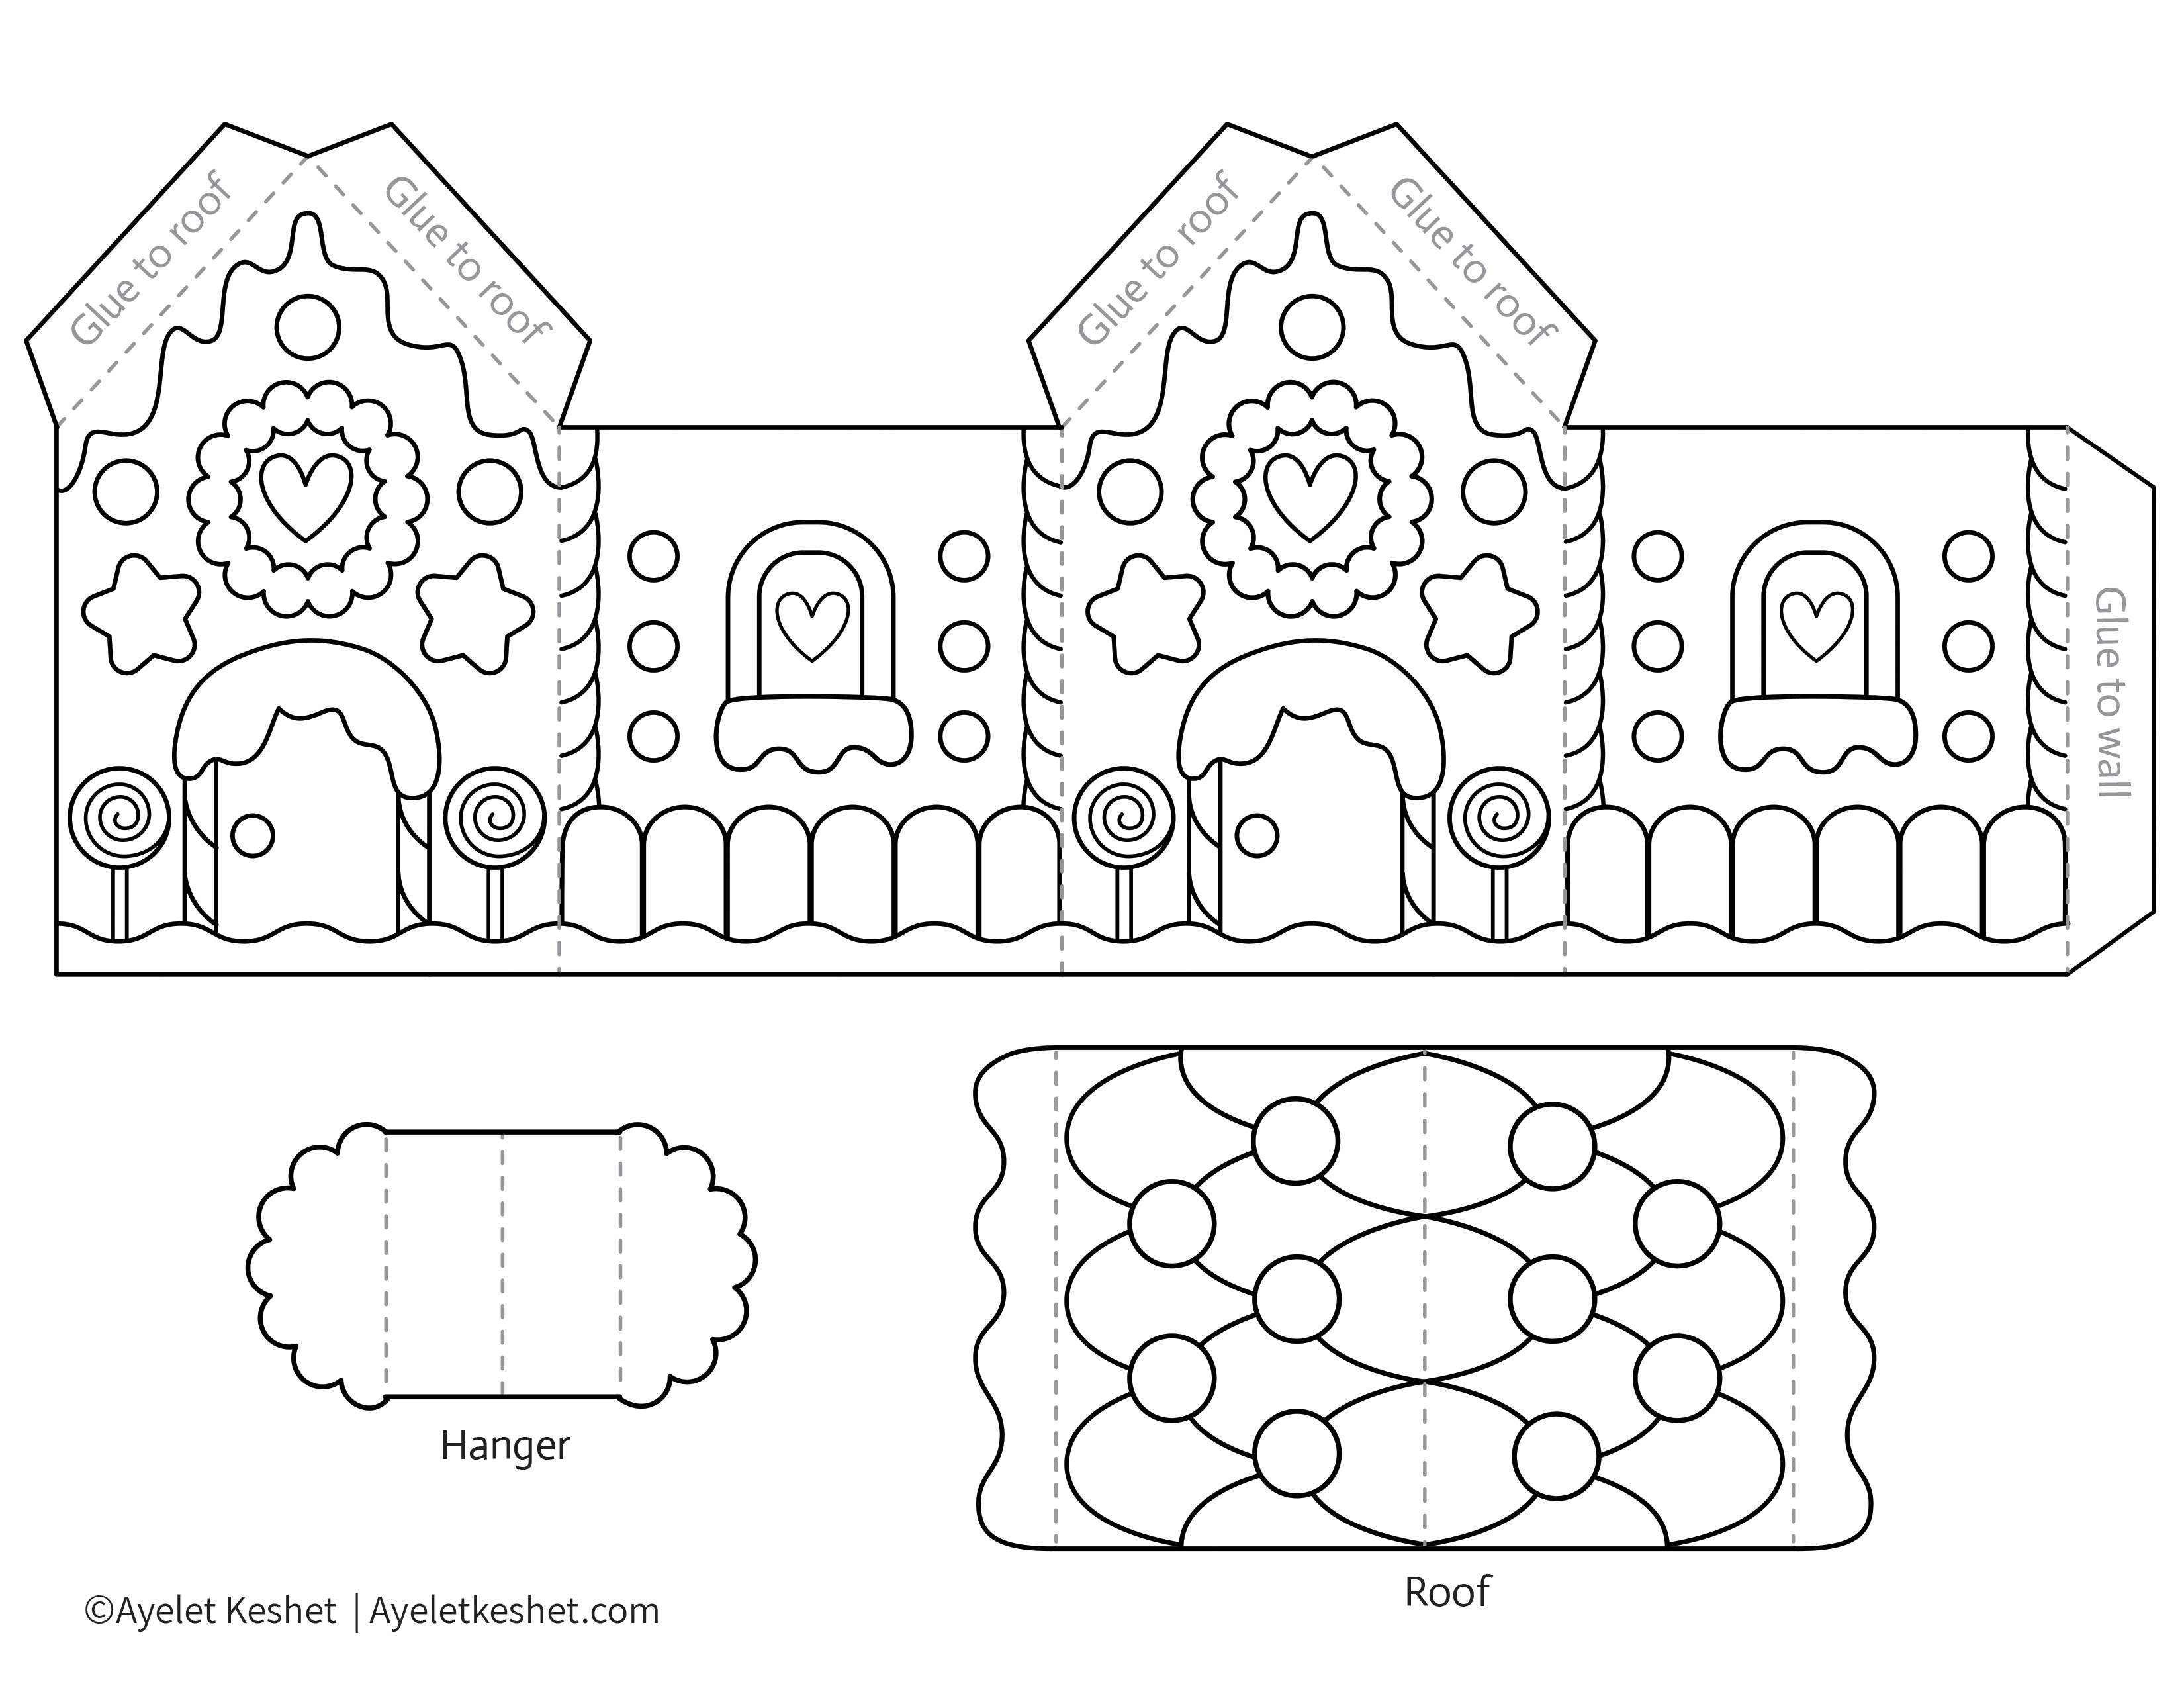 Printable gingerbread house template to color - Ayelet Keshet